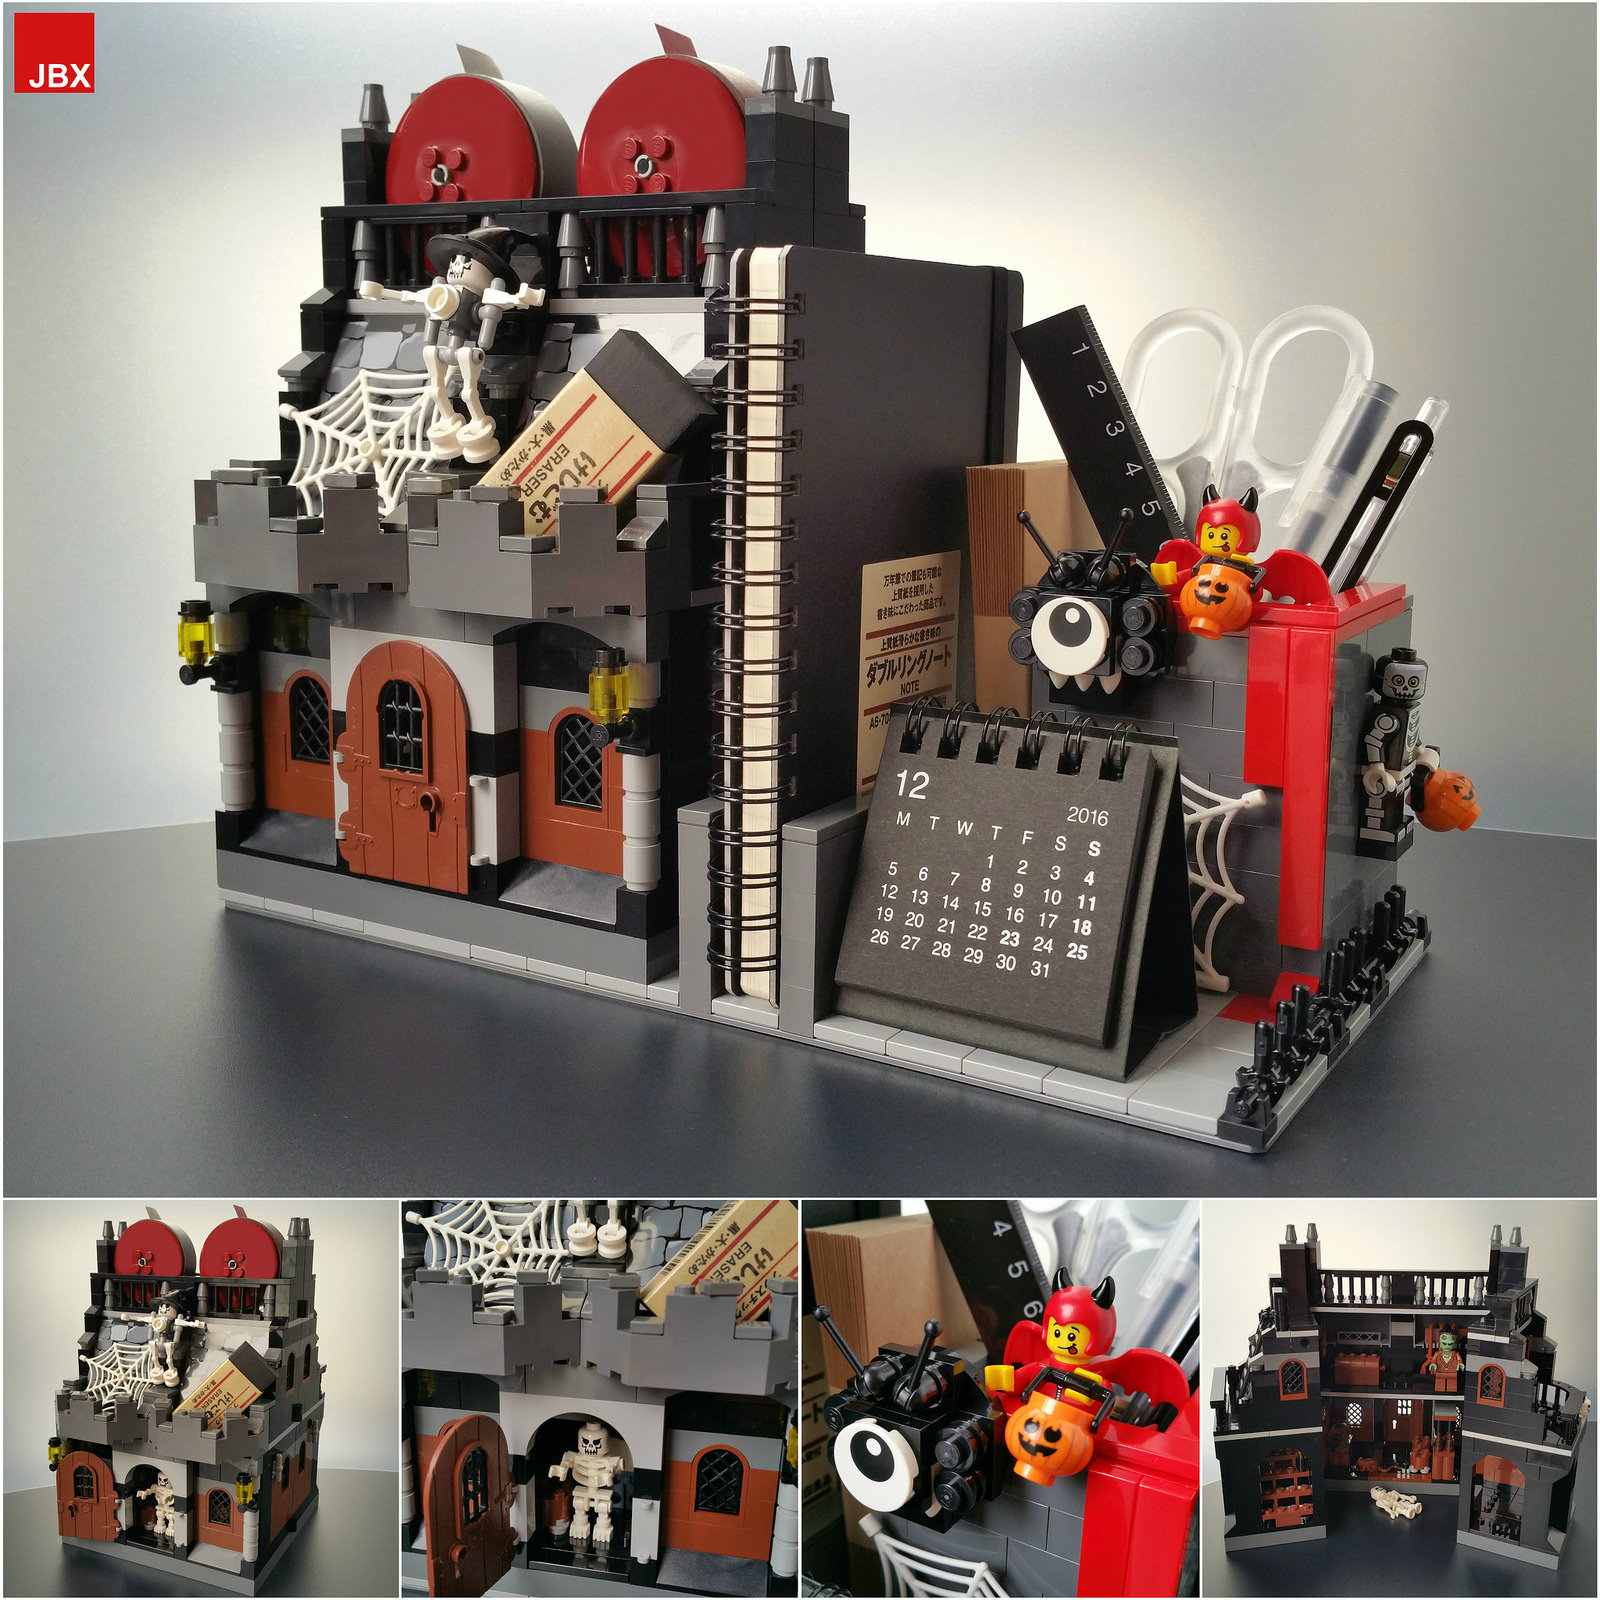 Brickfinder 13 Totally Spooky Halloween Lego Builds